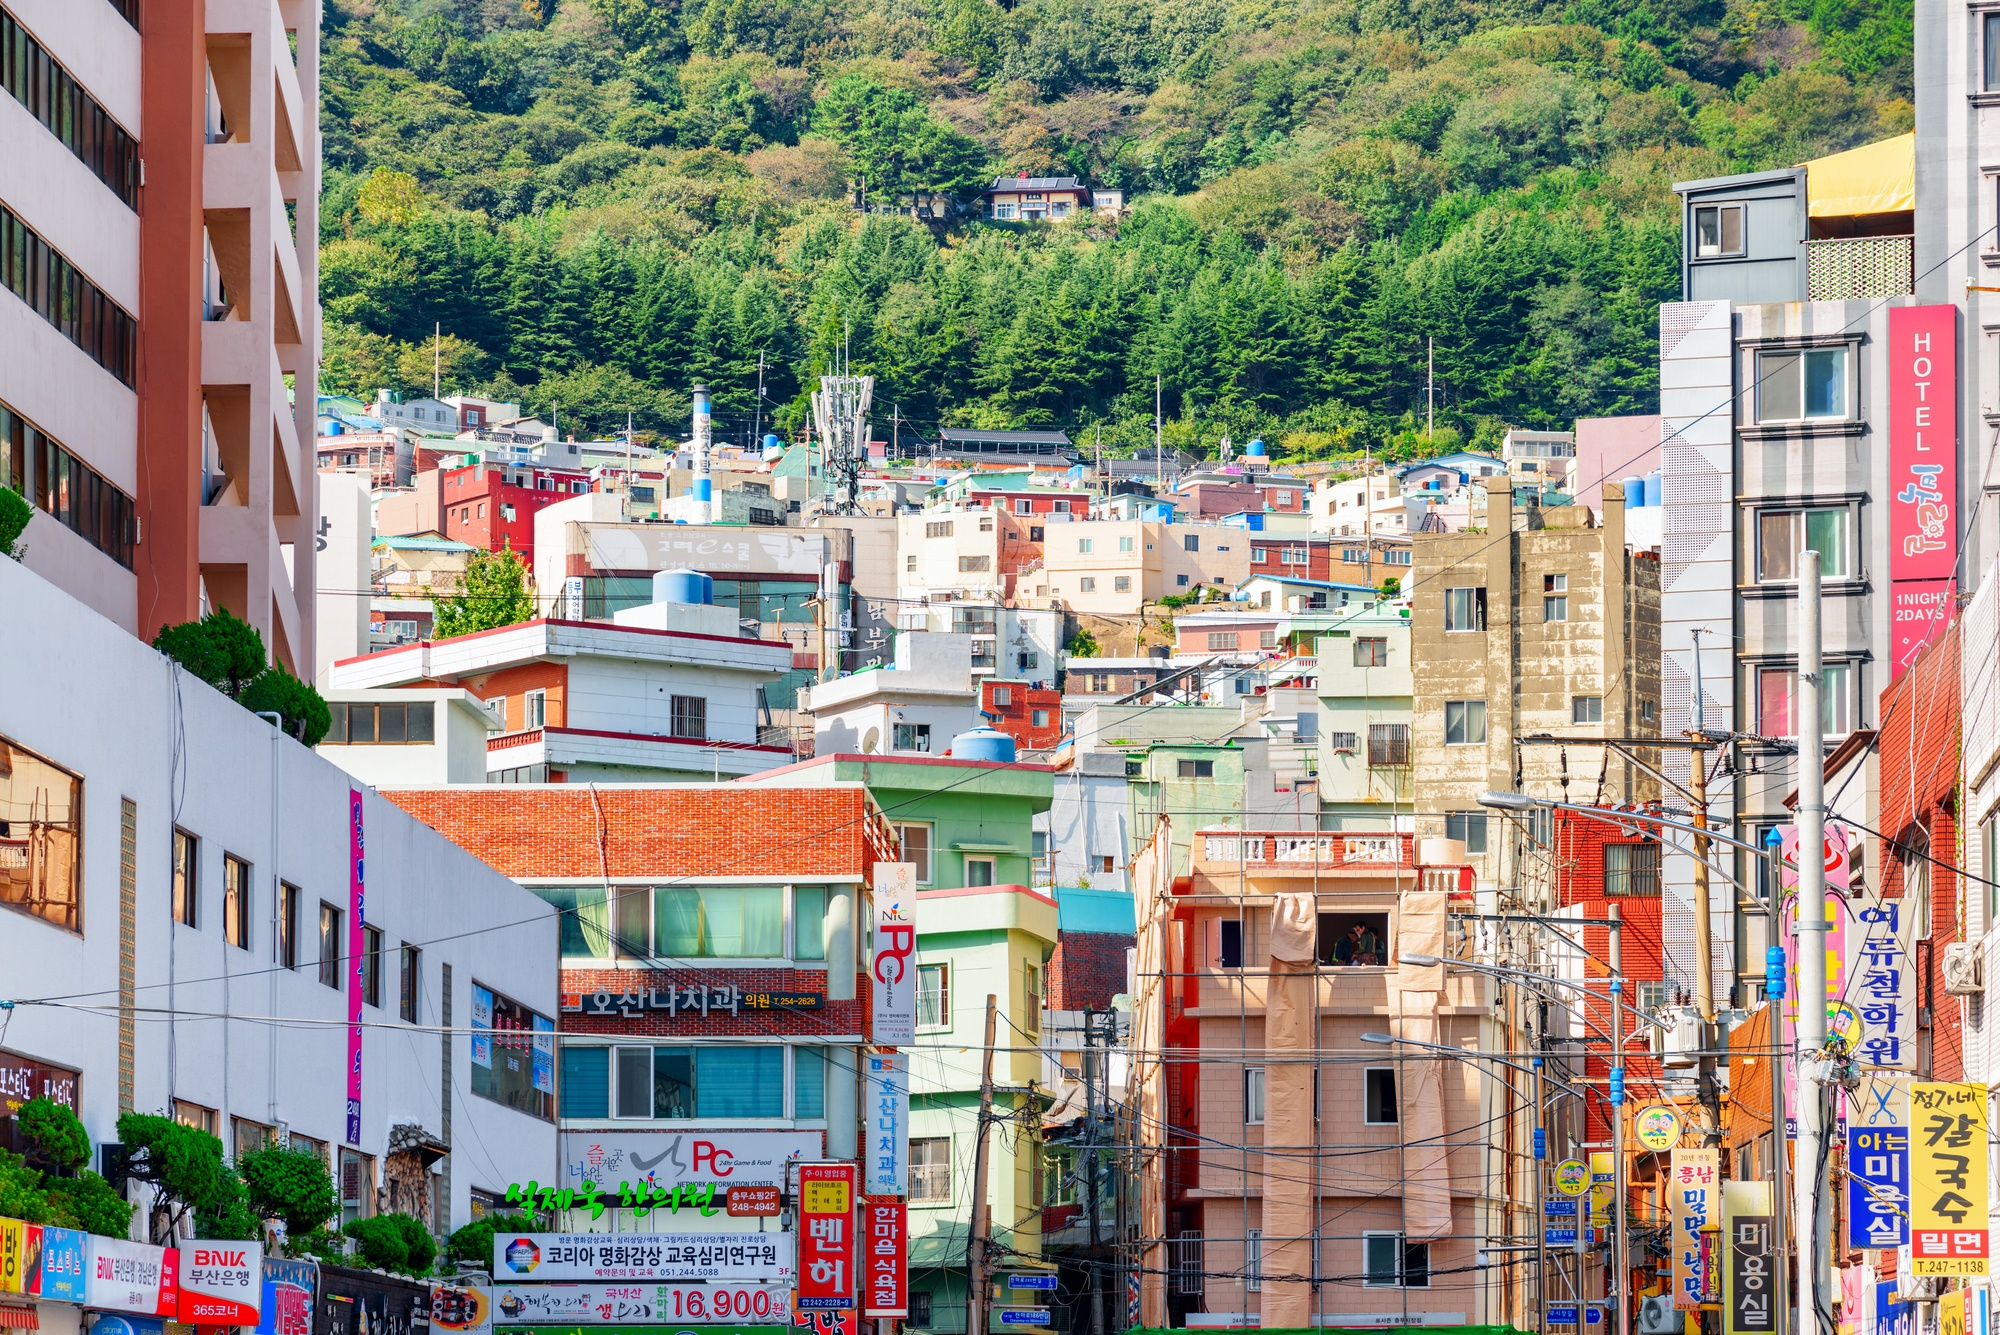 Colorful houses in Busan